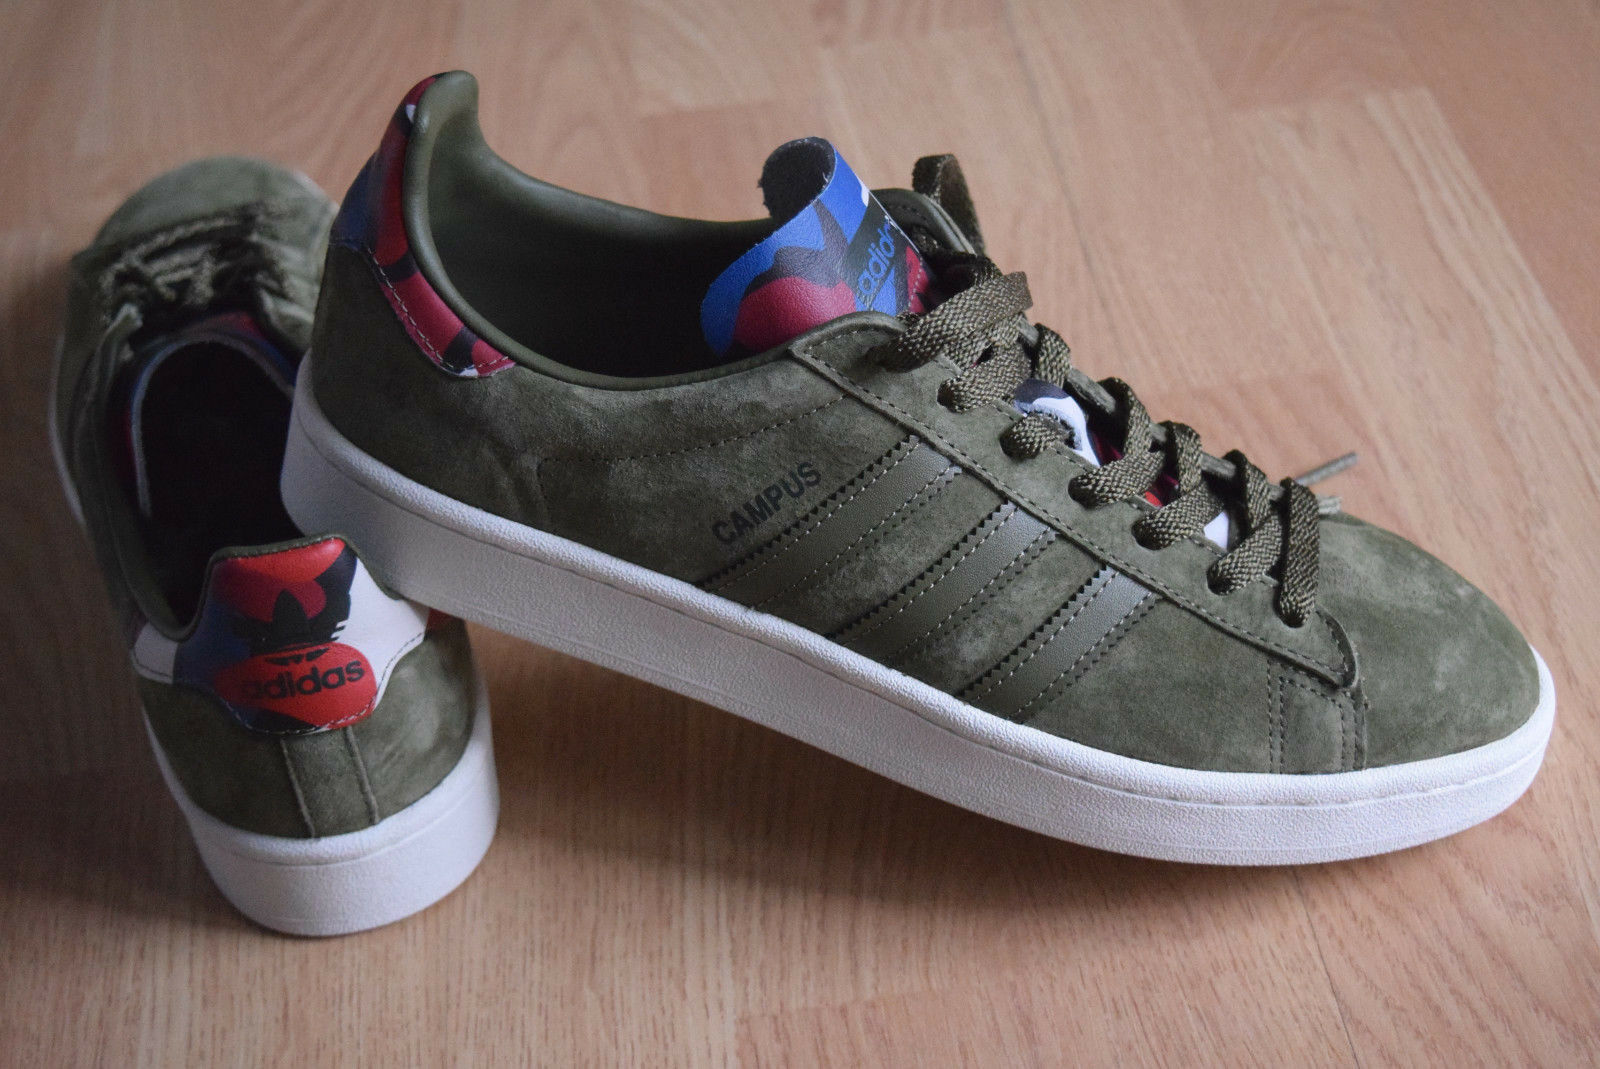 Adidas CAMPUS 40,5 41 42 44 44,5 45 bb0077 Country Samba ESPECIAL HAMBURGO